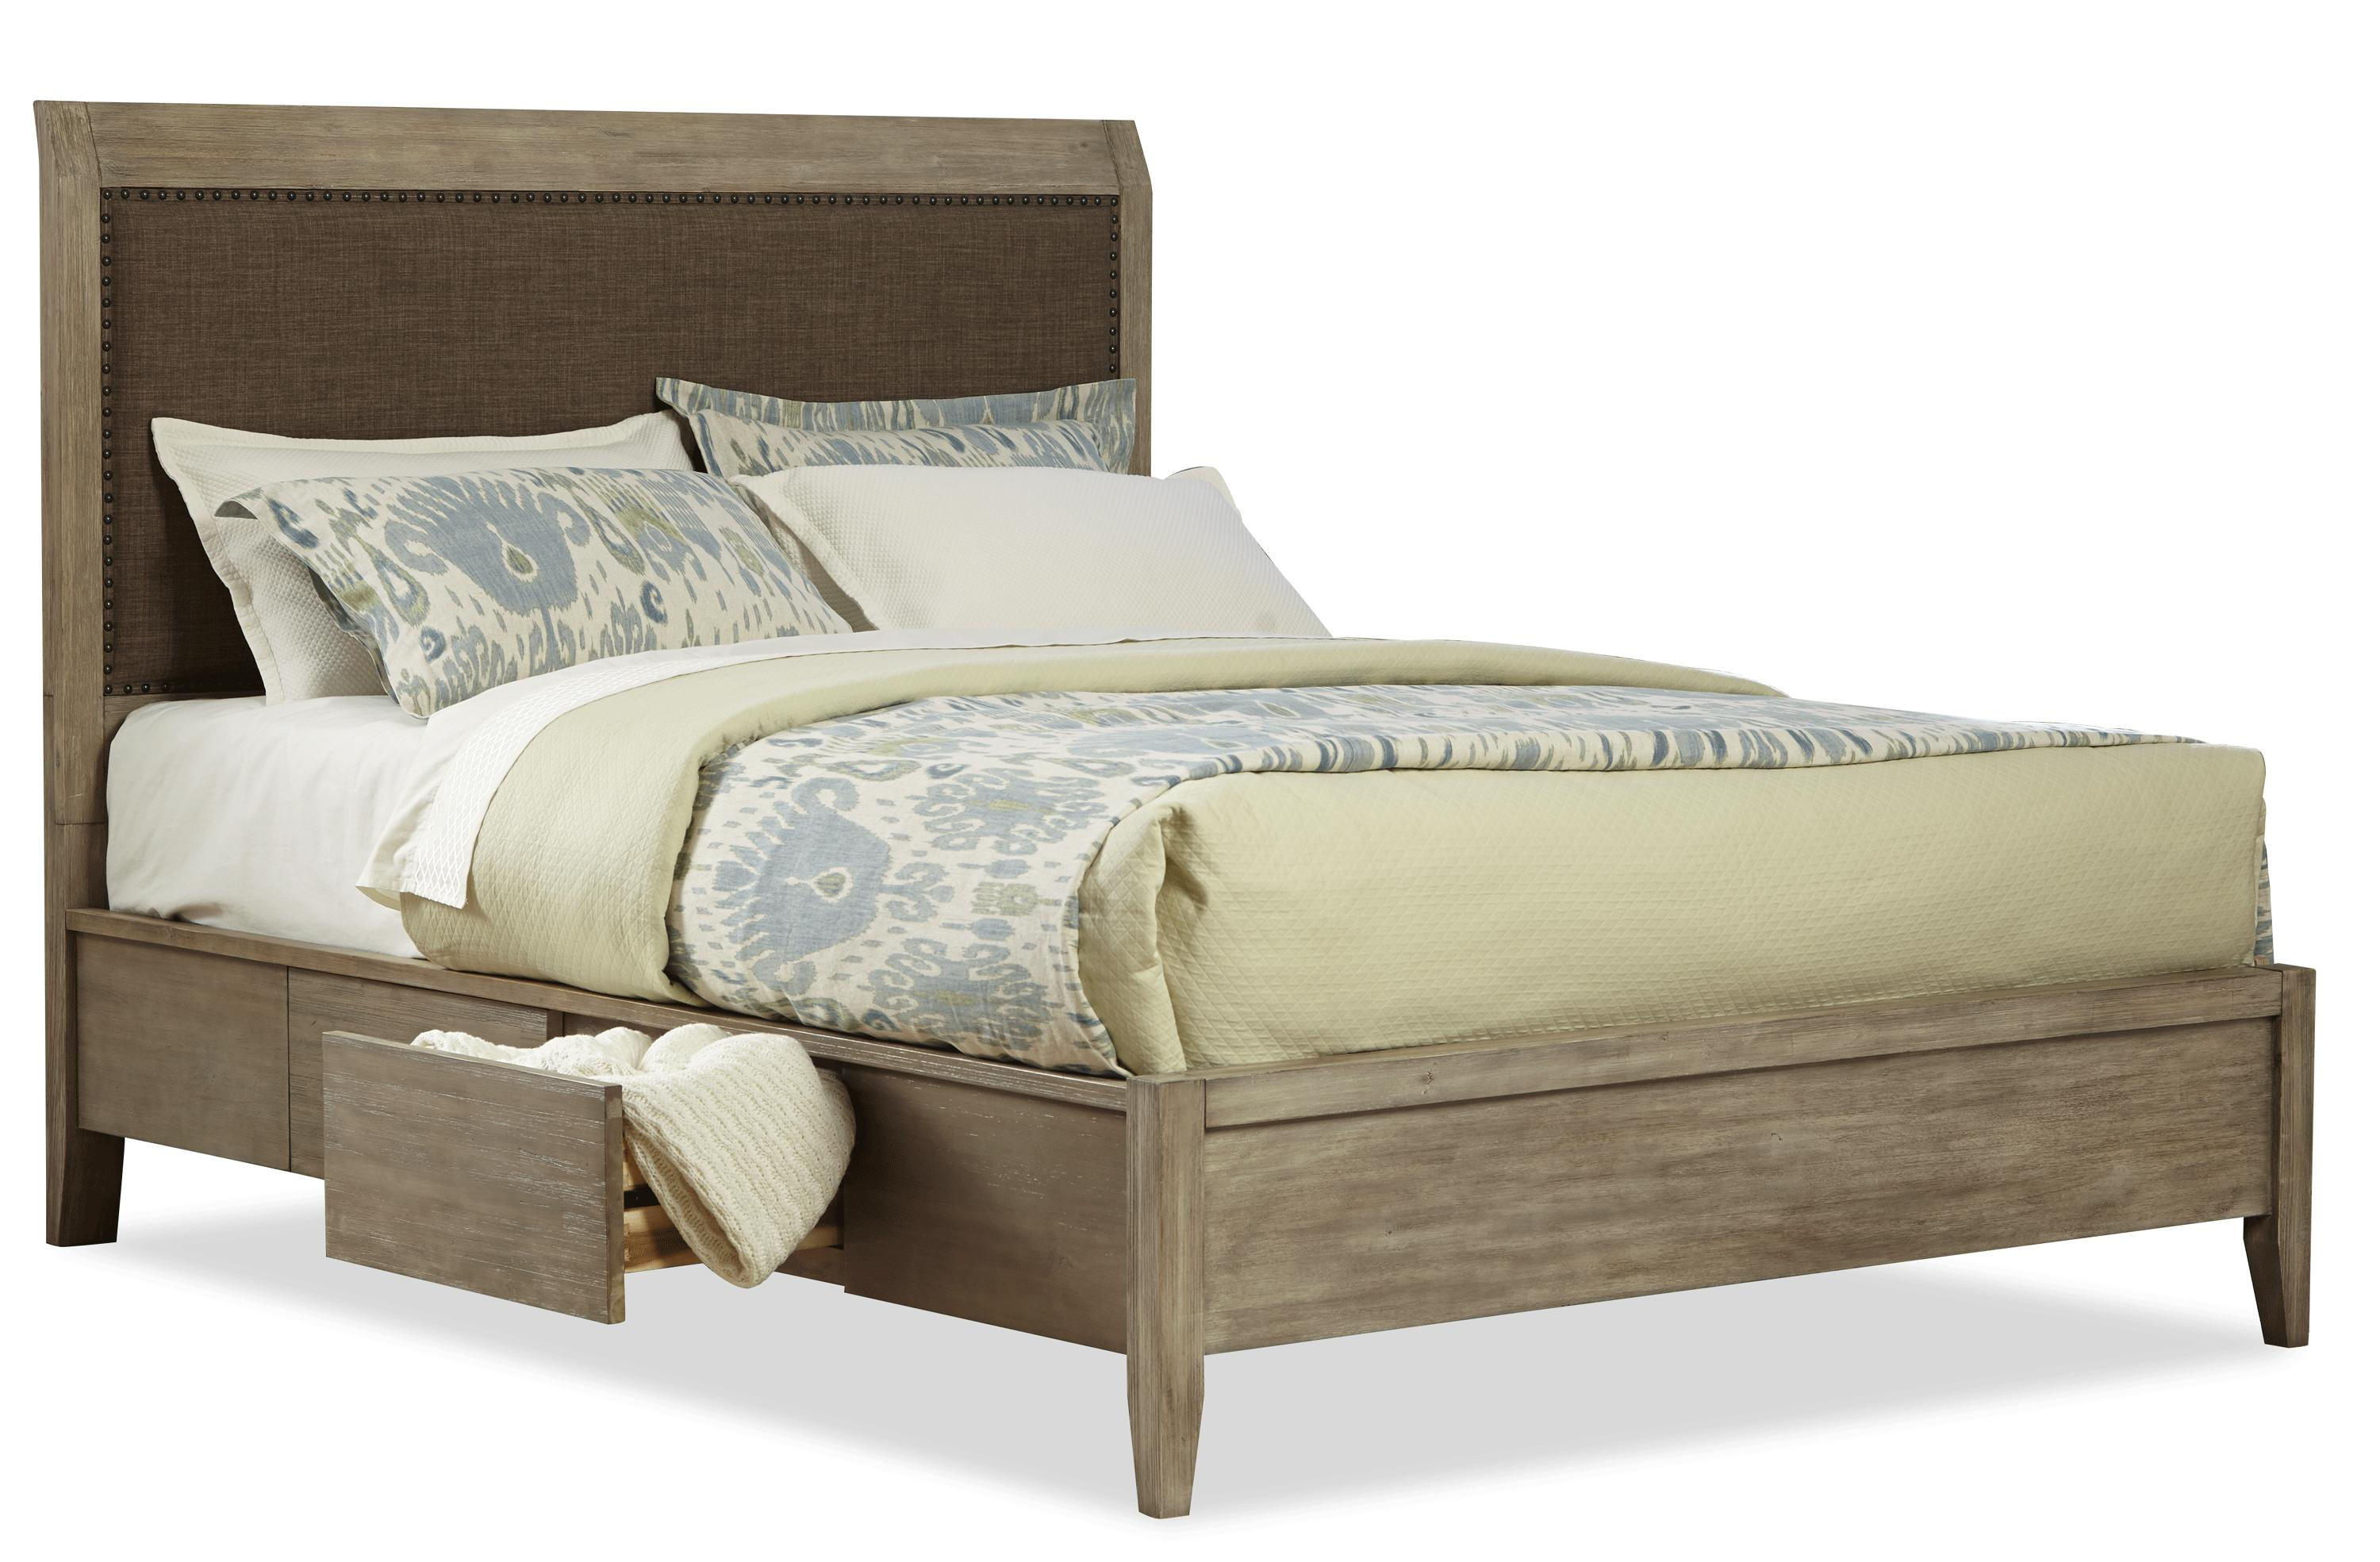 Corliss Landing Queen Upholstered Double Sided Storage Bed at Williams & Kay